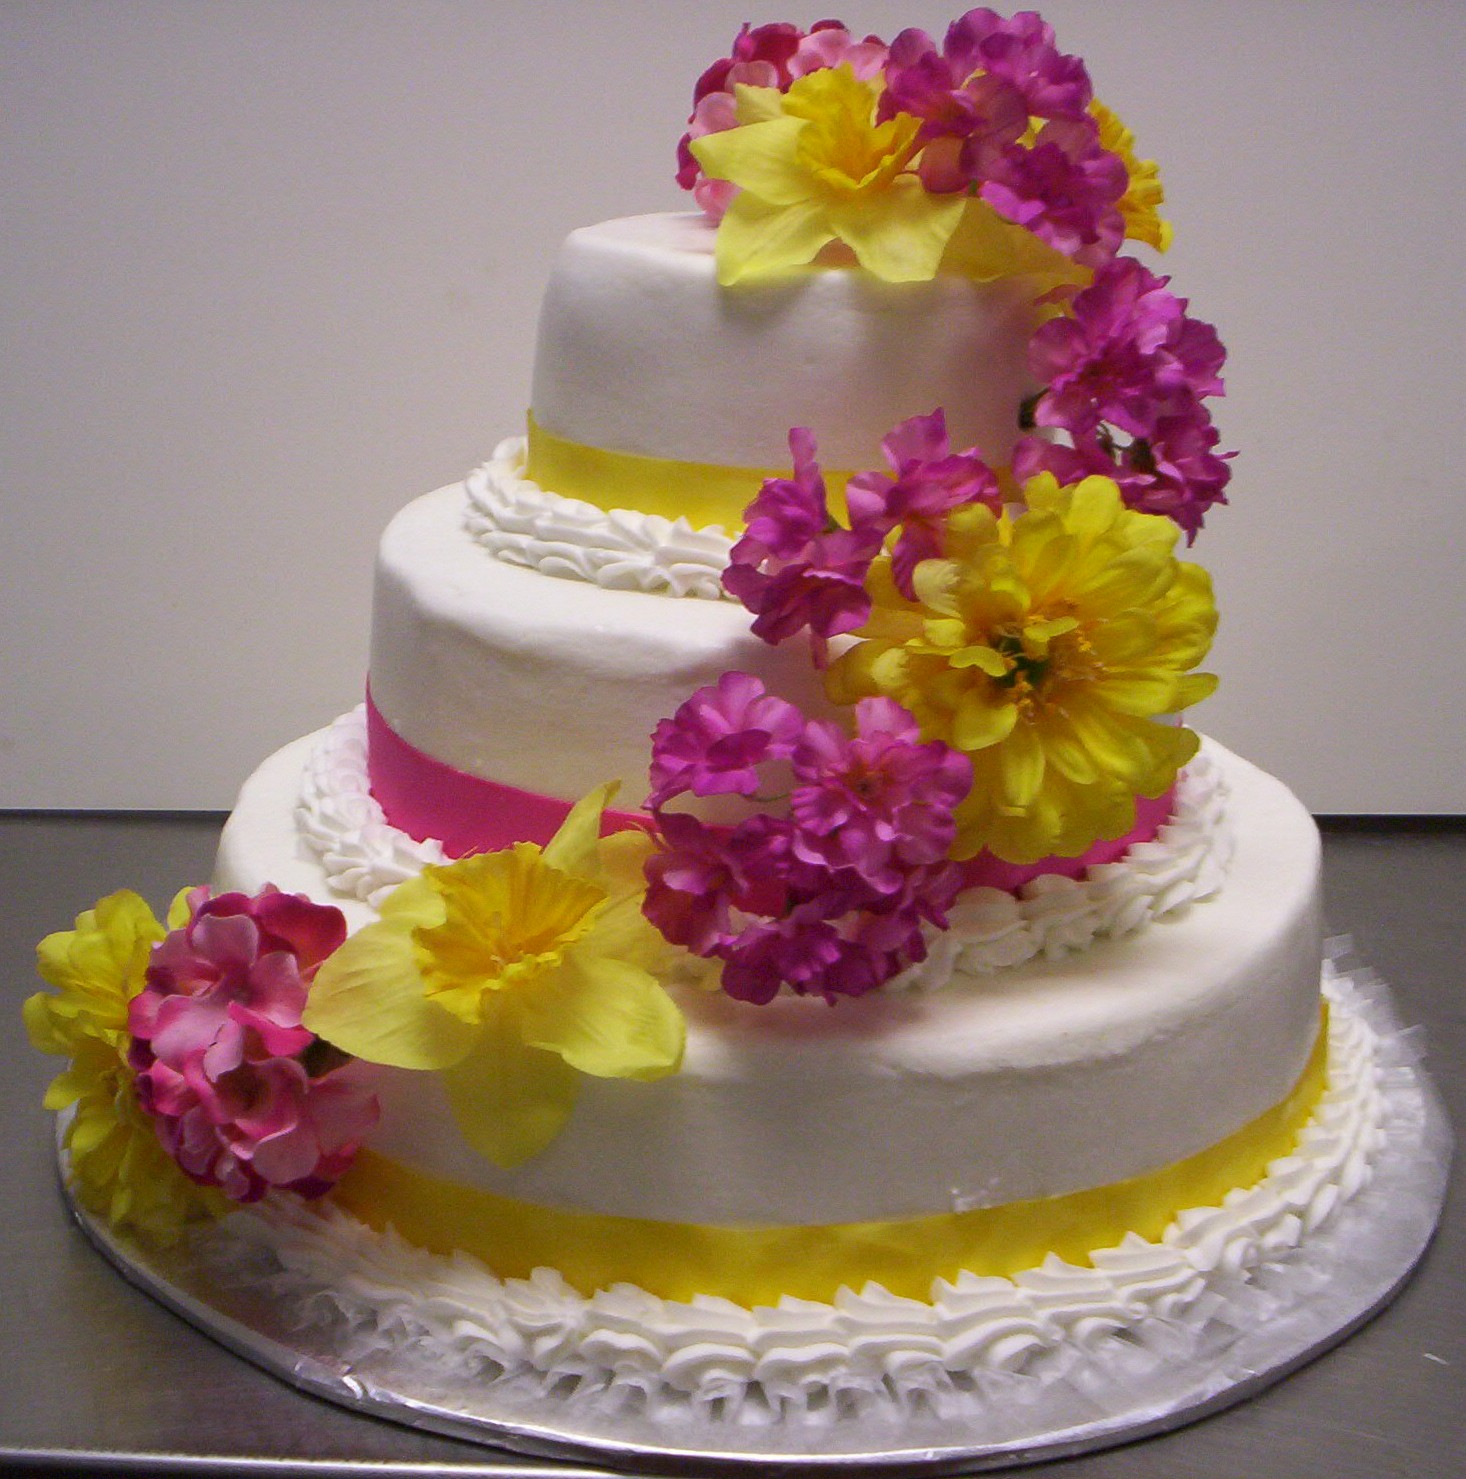 Fun Wedding Cake Ideas: Weddingspies: Summer Wedding Cake